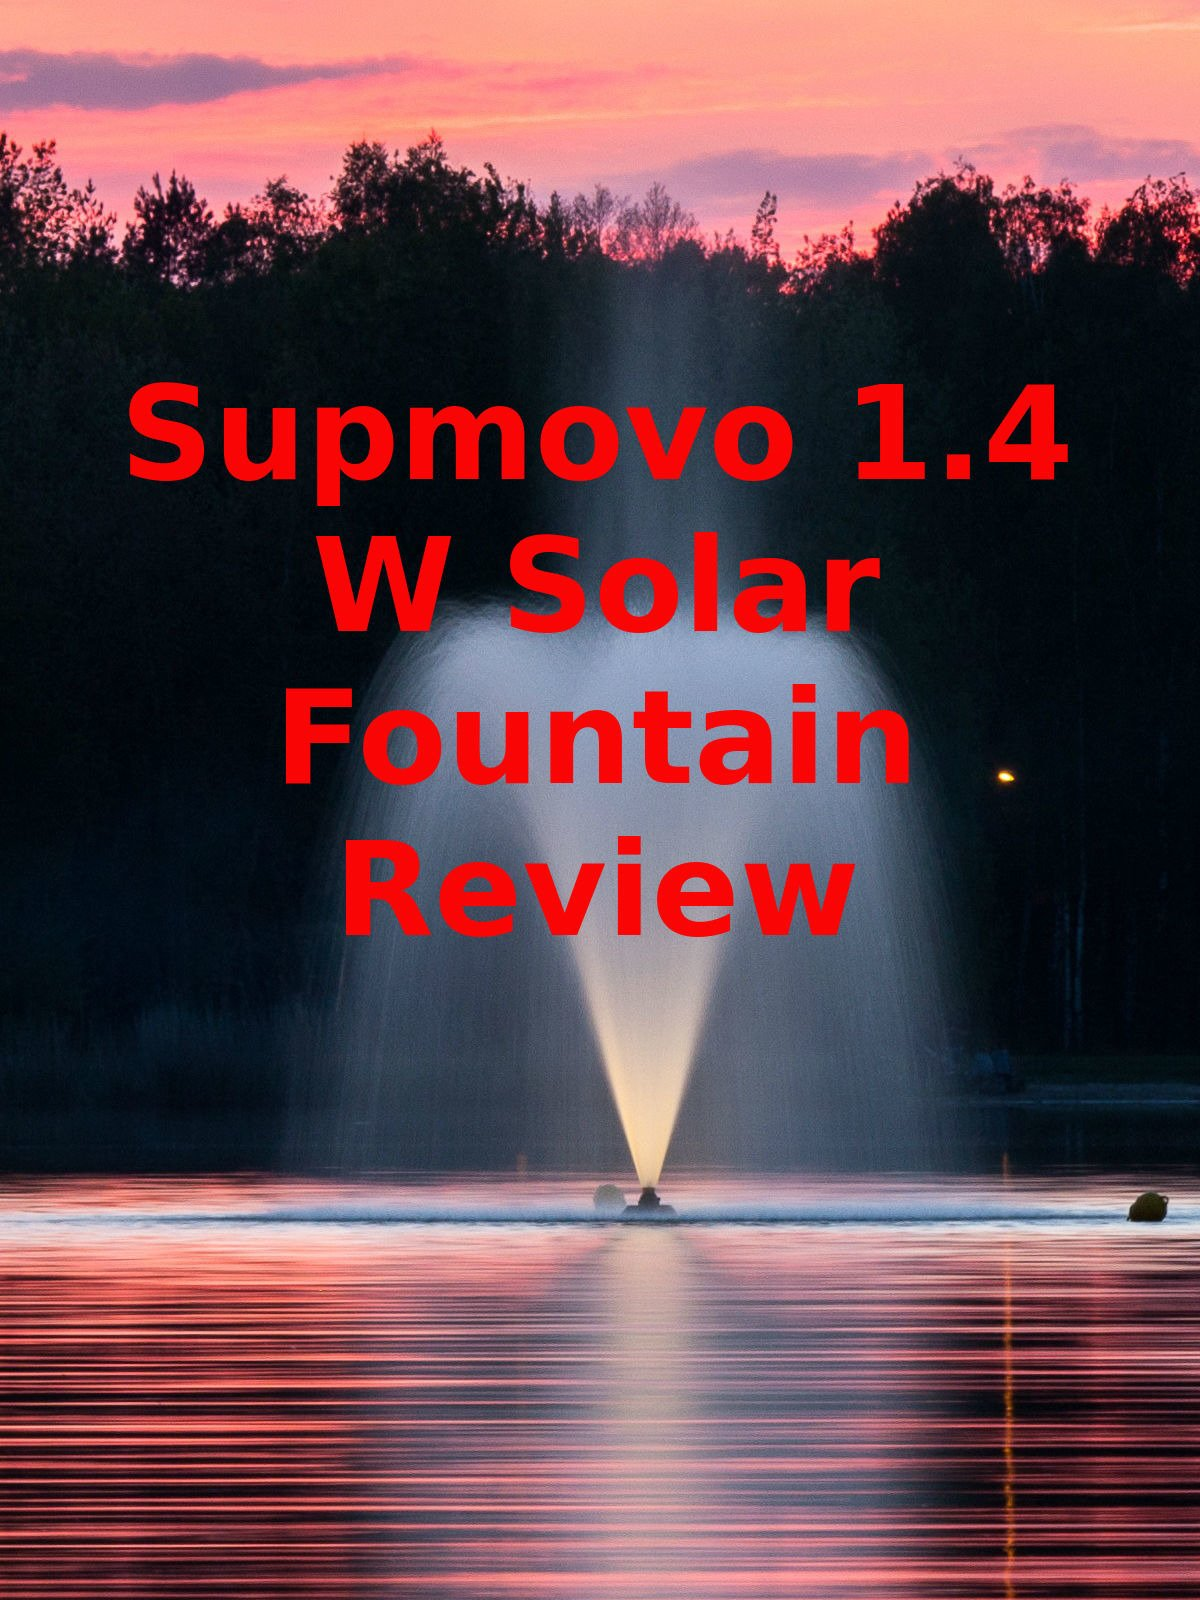 Review: Supmovo 1.4 W Solar Fountain Review on Amazon Prime Video UK